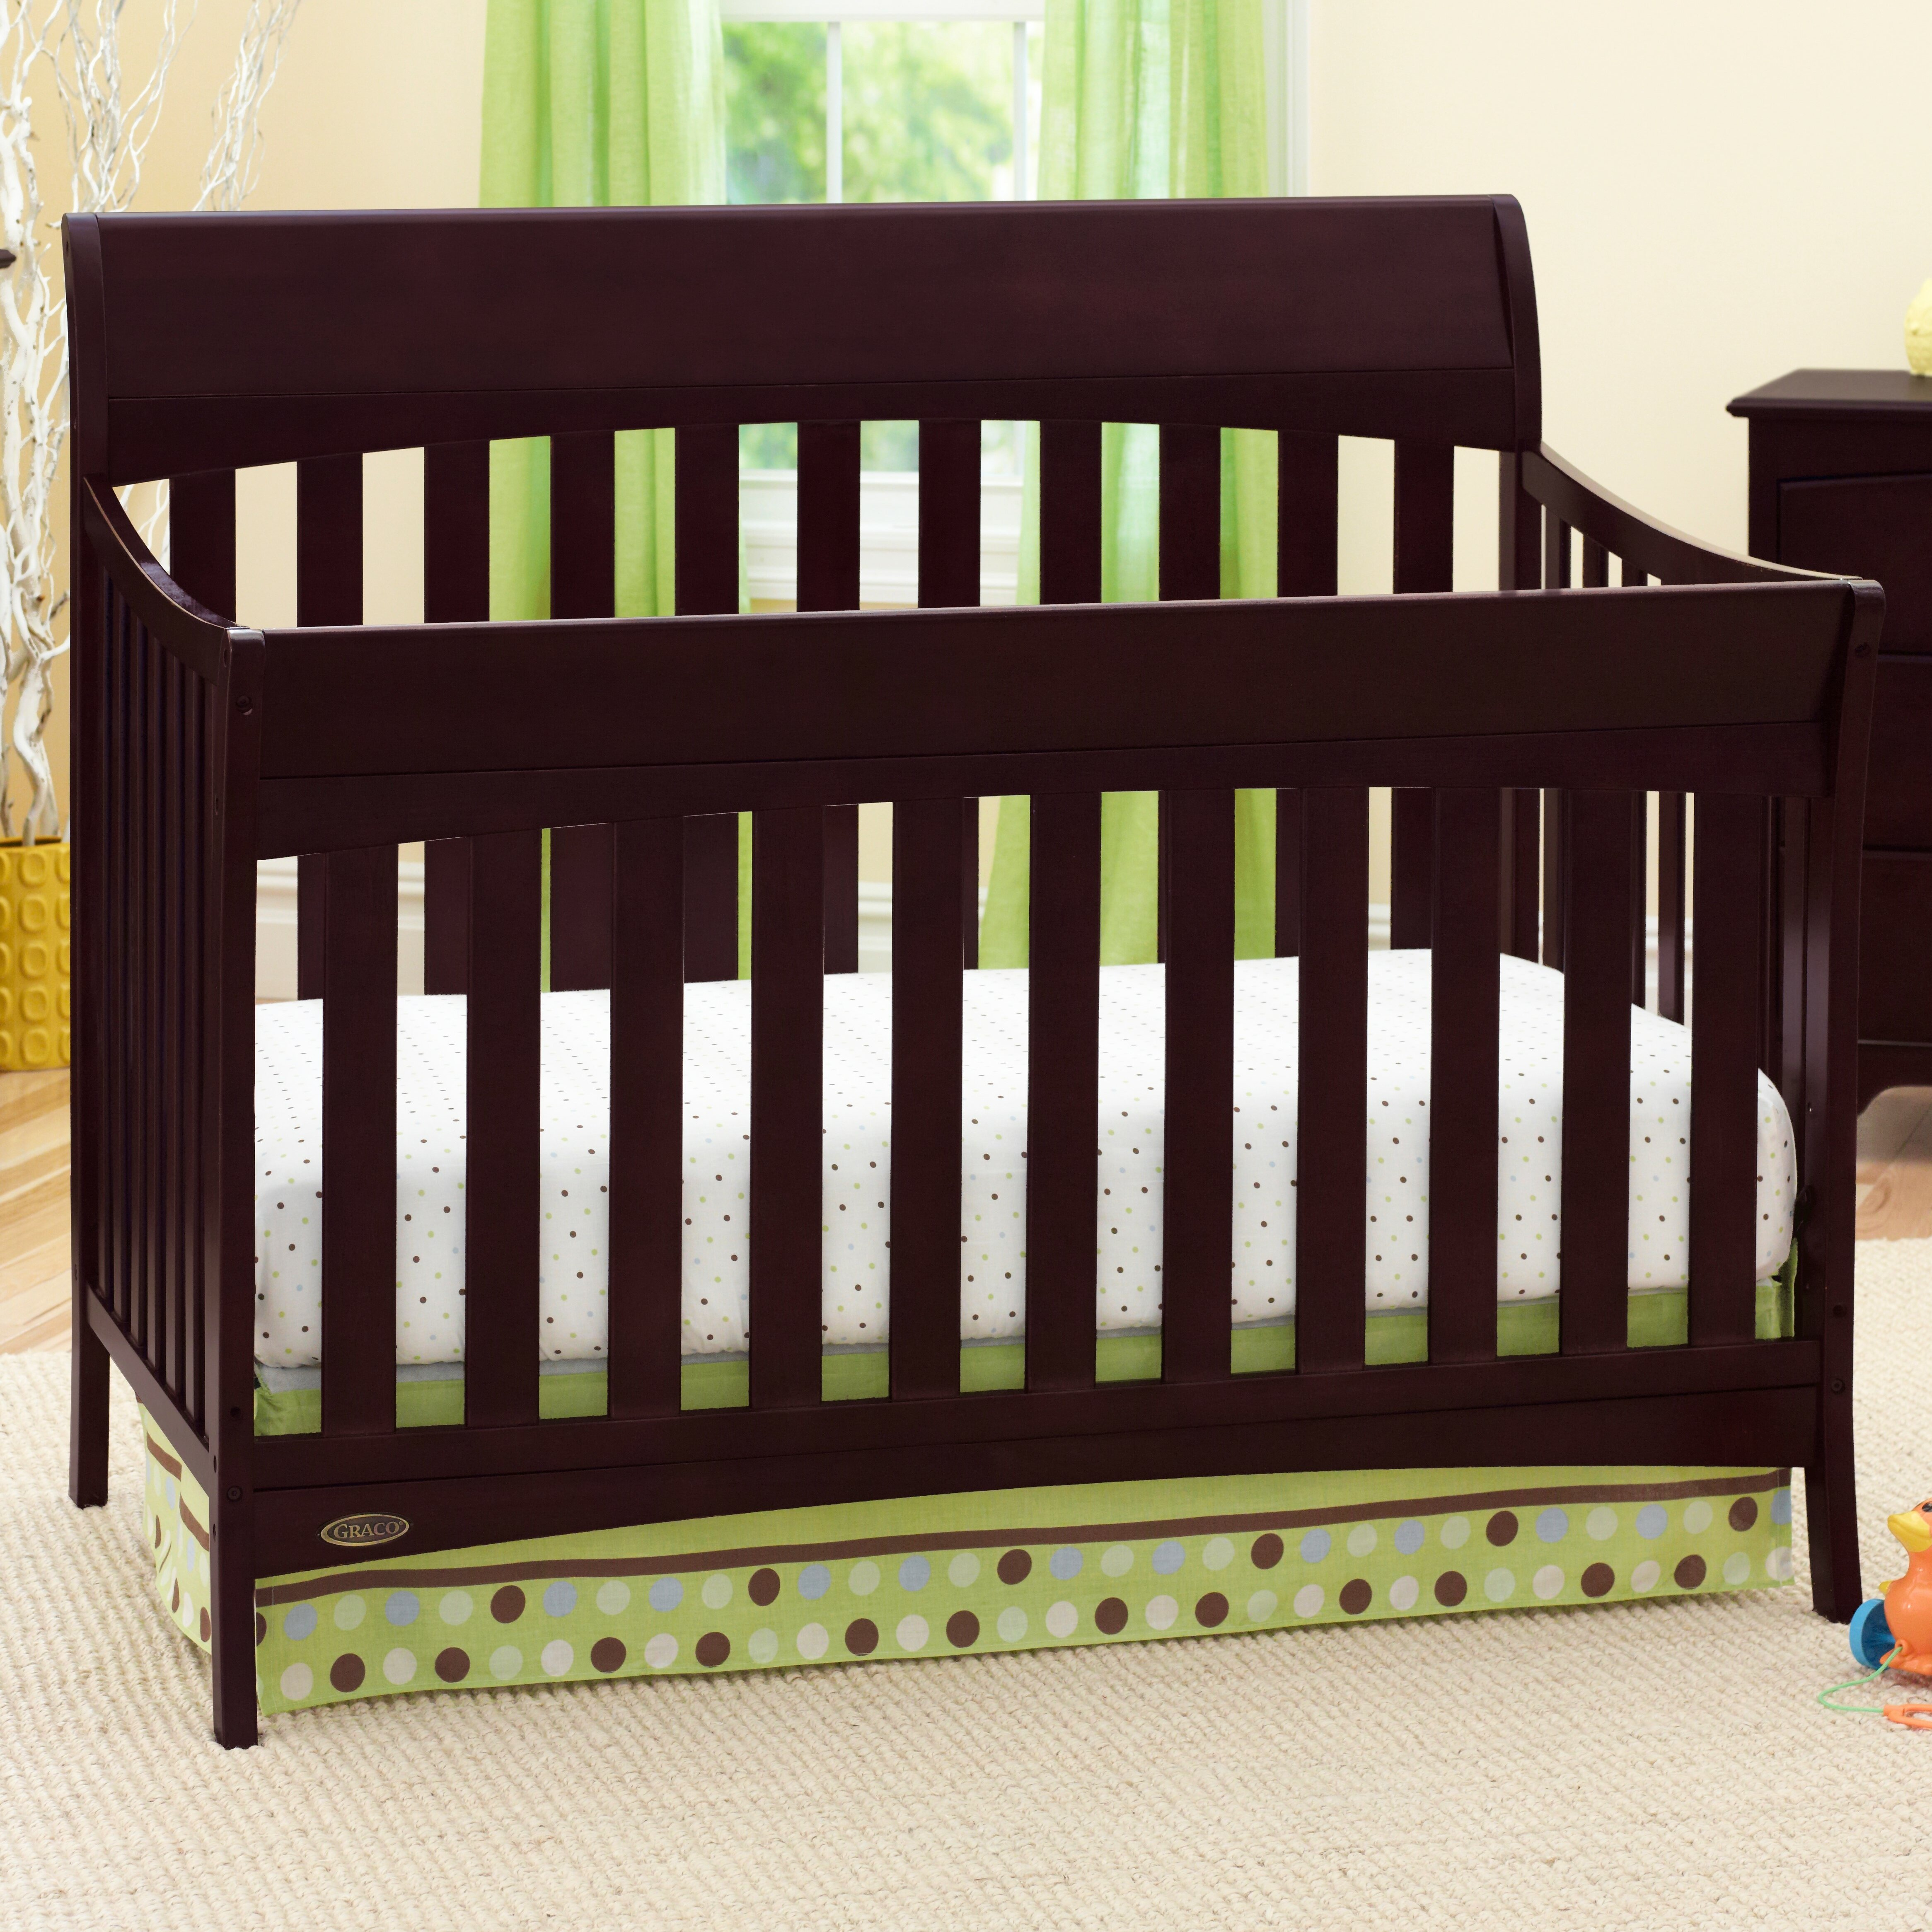 craft price of nursery cribs unique xml london home crib image child best sitemap